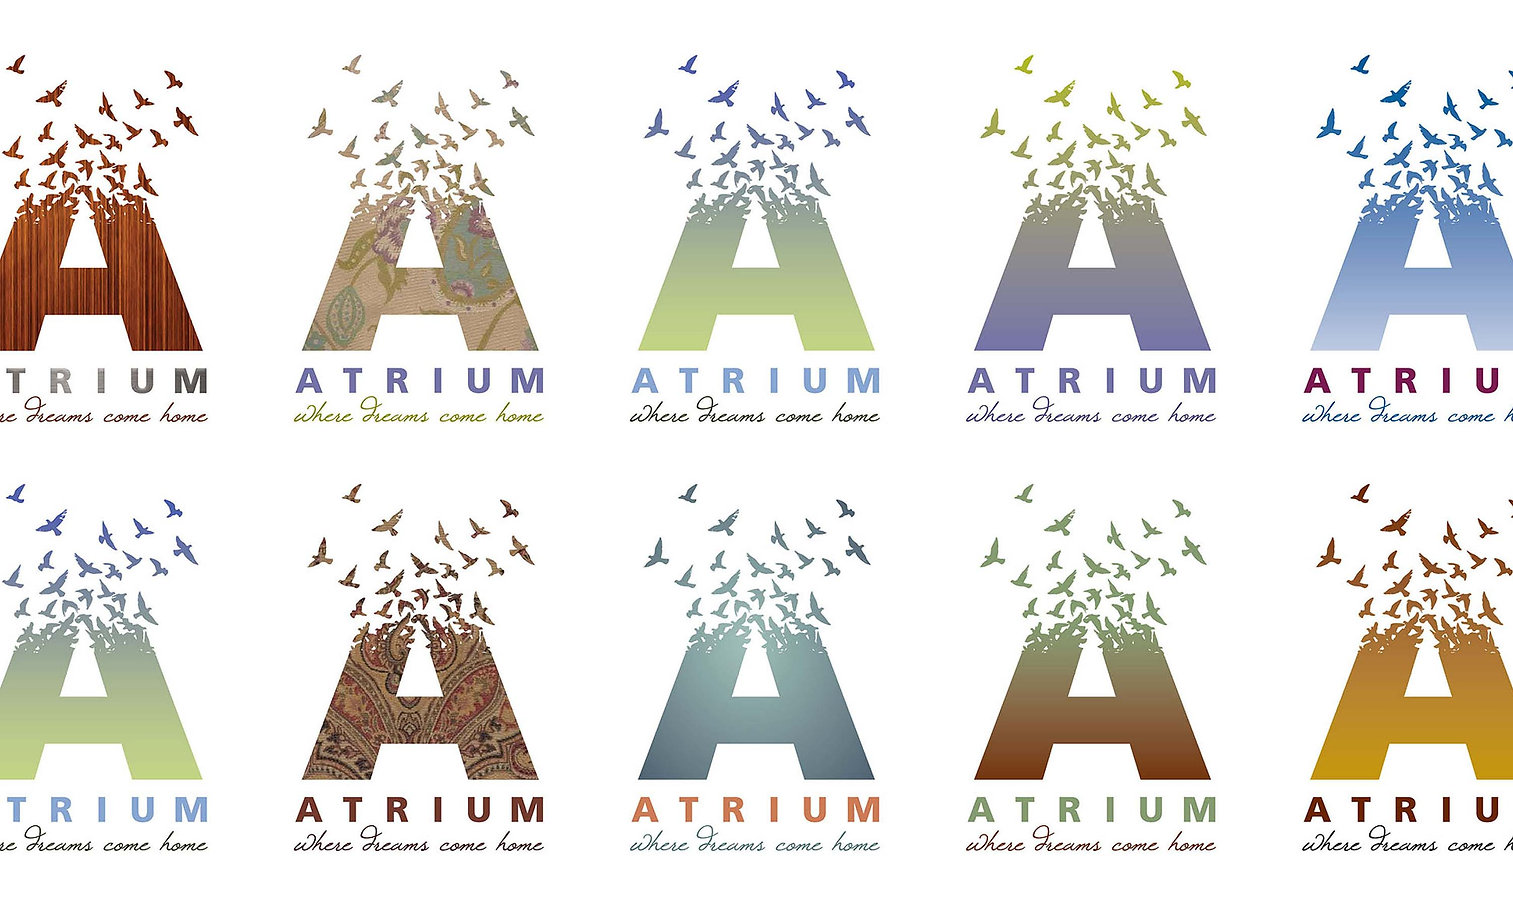 Atrium Takes Flight